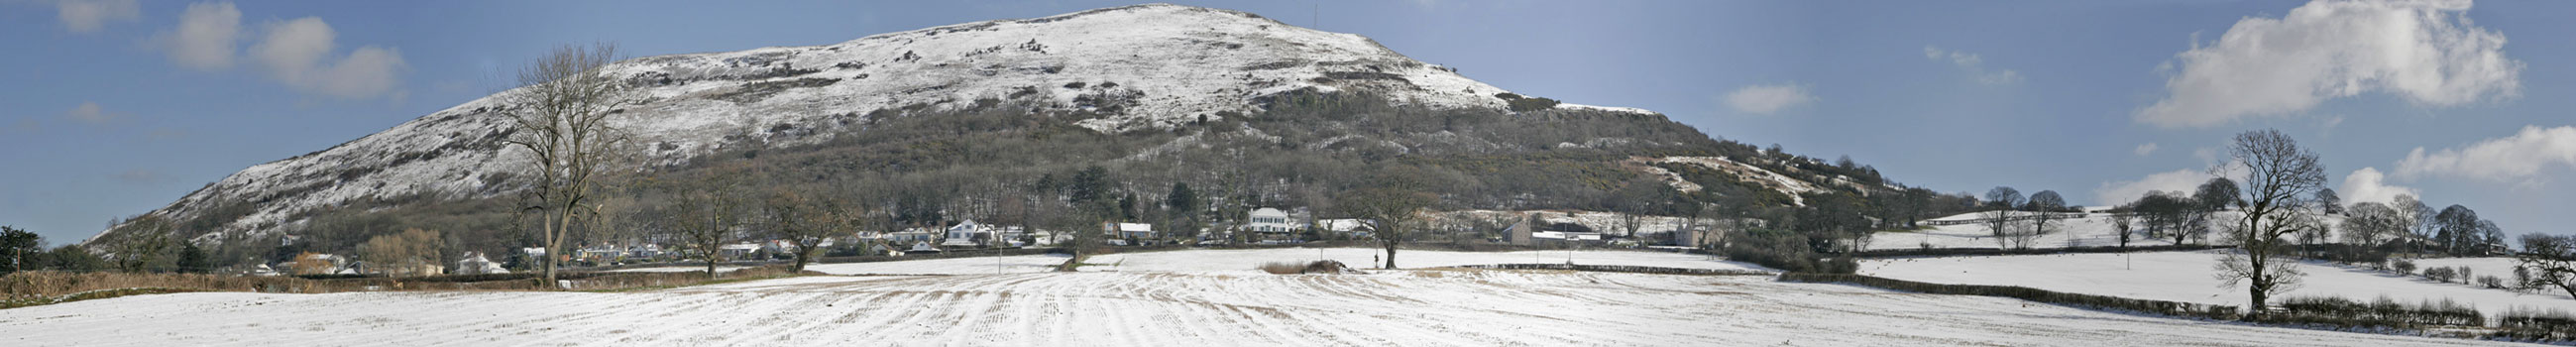 Winter panorama from Waen Road, near Hottia Farm, across Moel Hiraddug, Dyserth